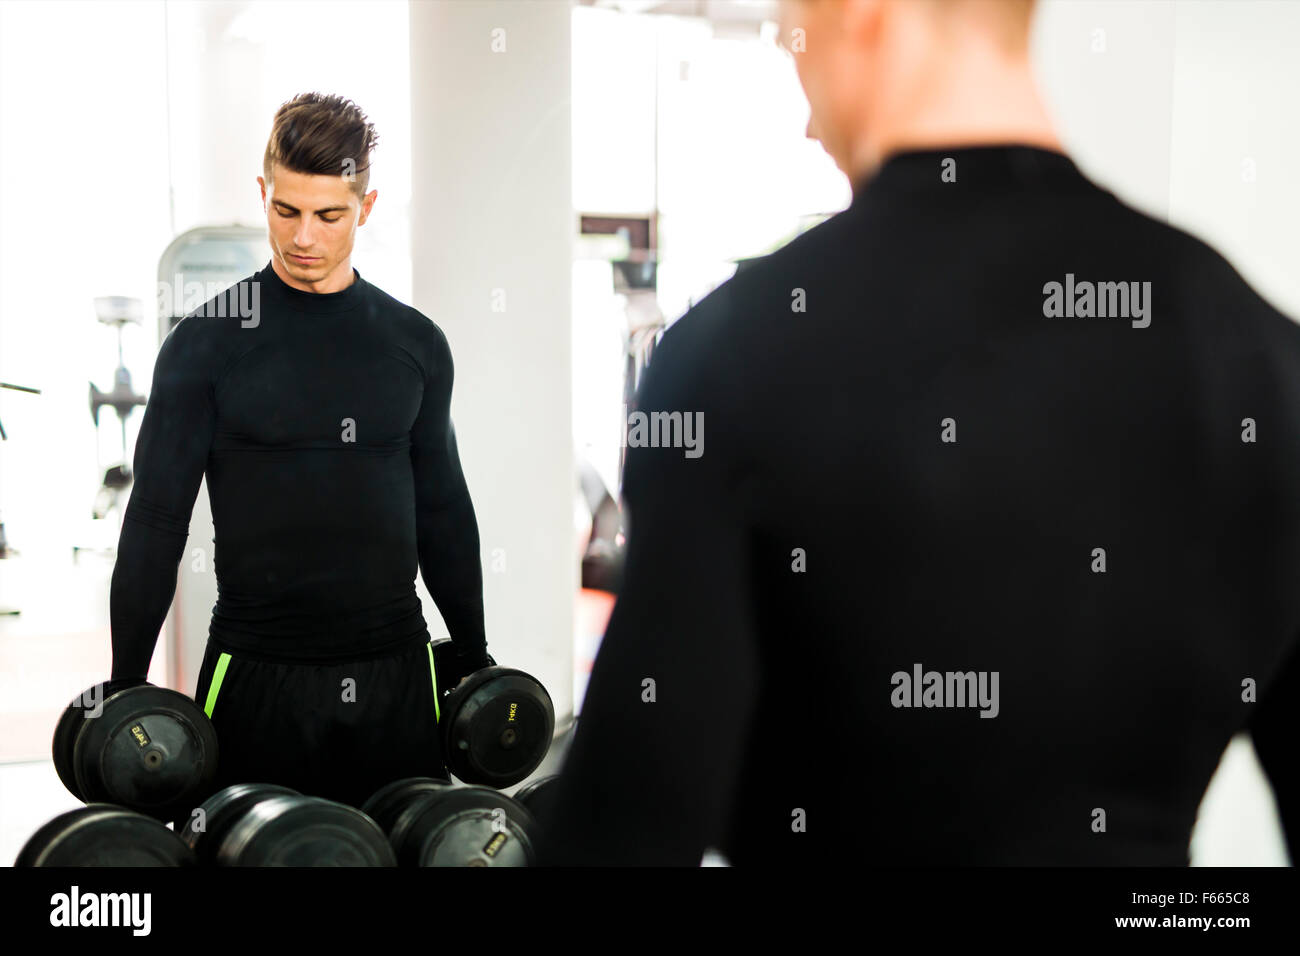 Young muscular man working out in a gym and lifting weights with his reflection showing in a mirror - Stock Image